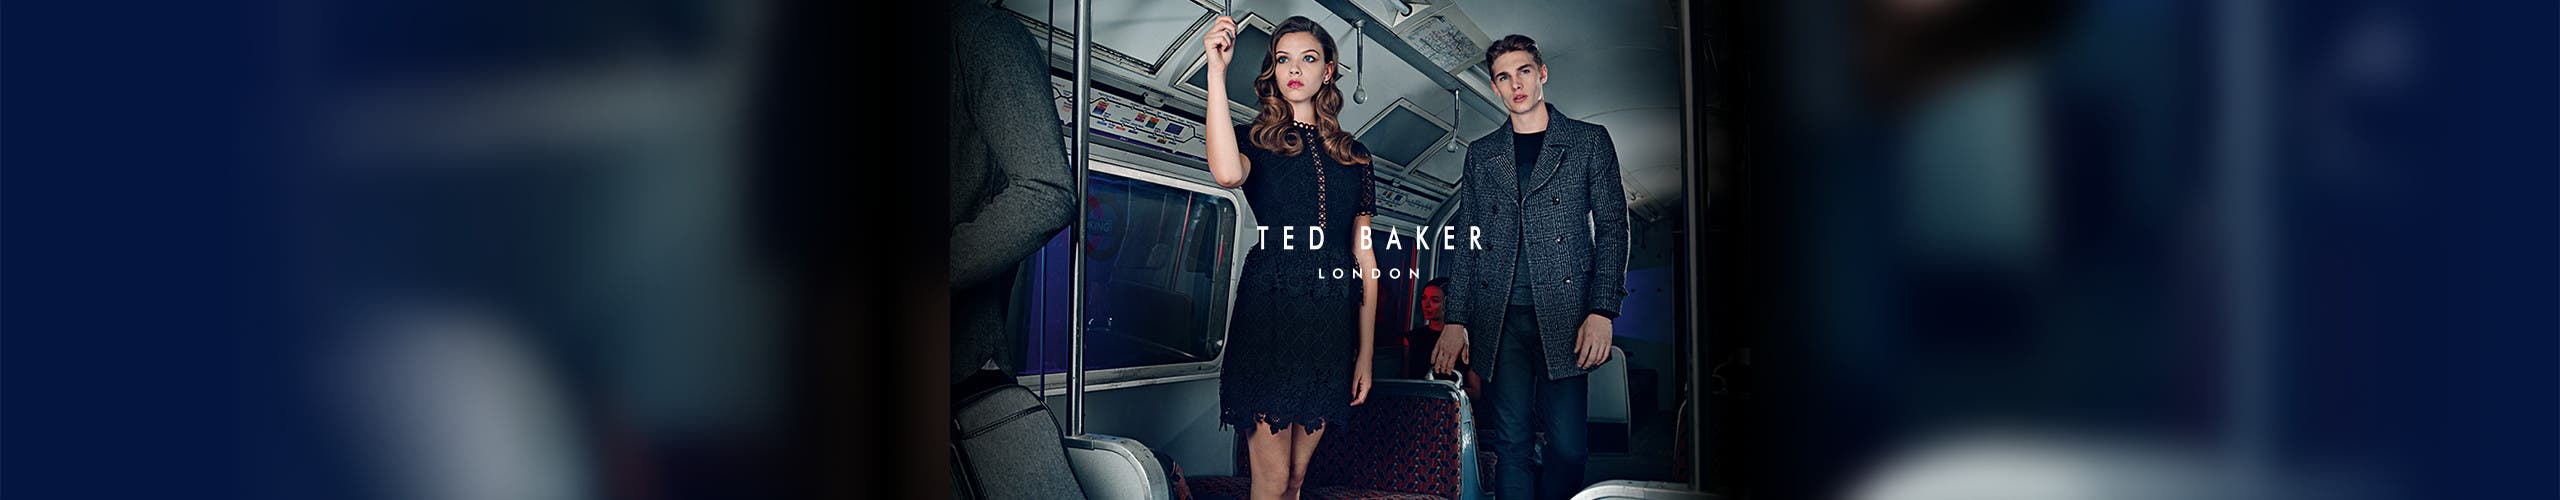 Ted Baker London clothing for women and men.